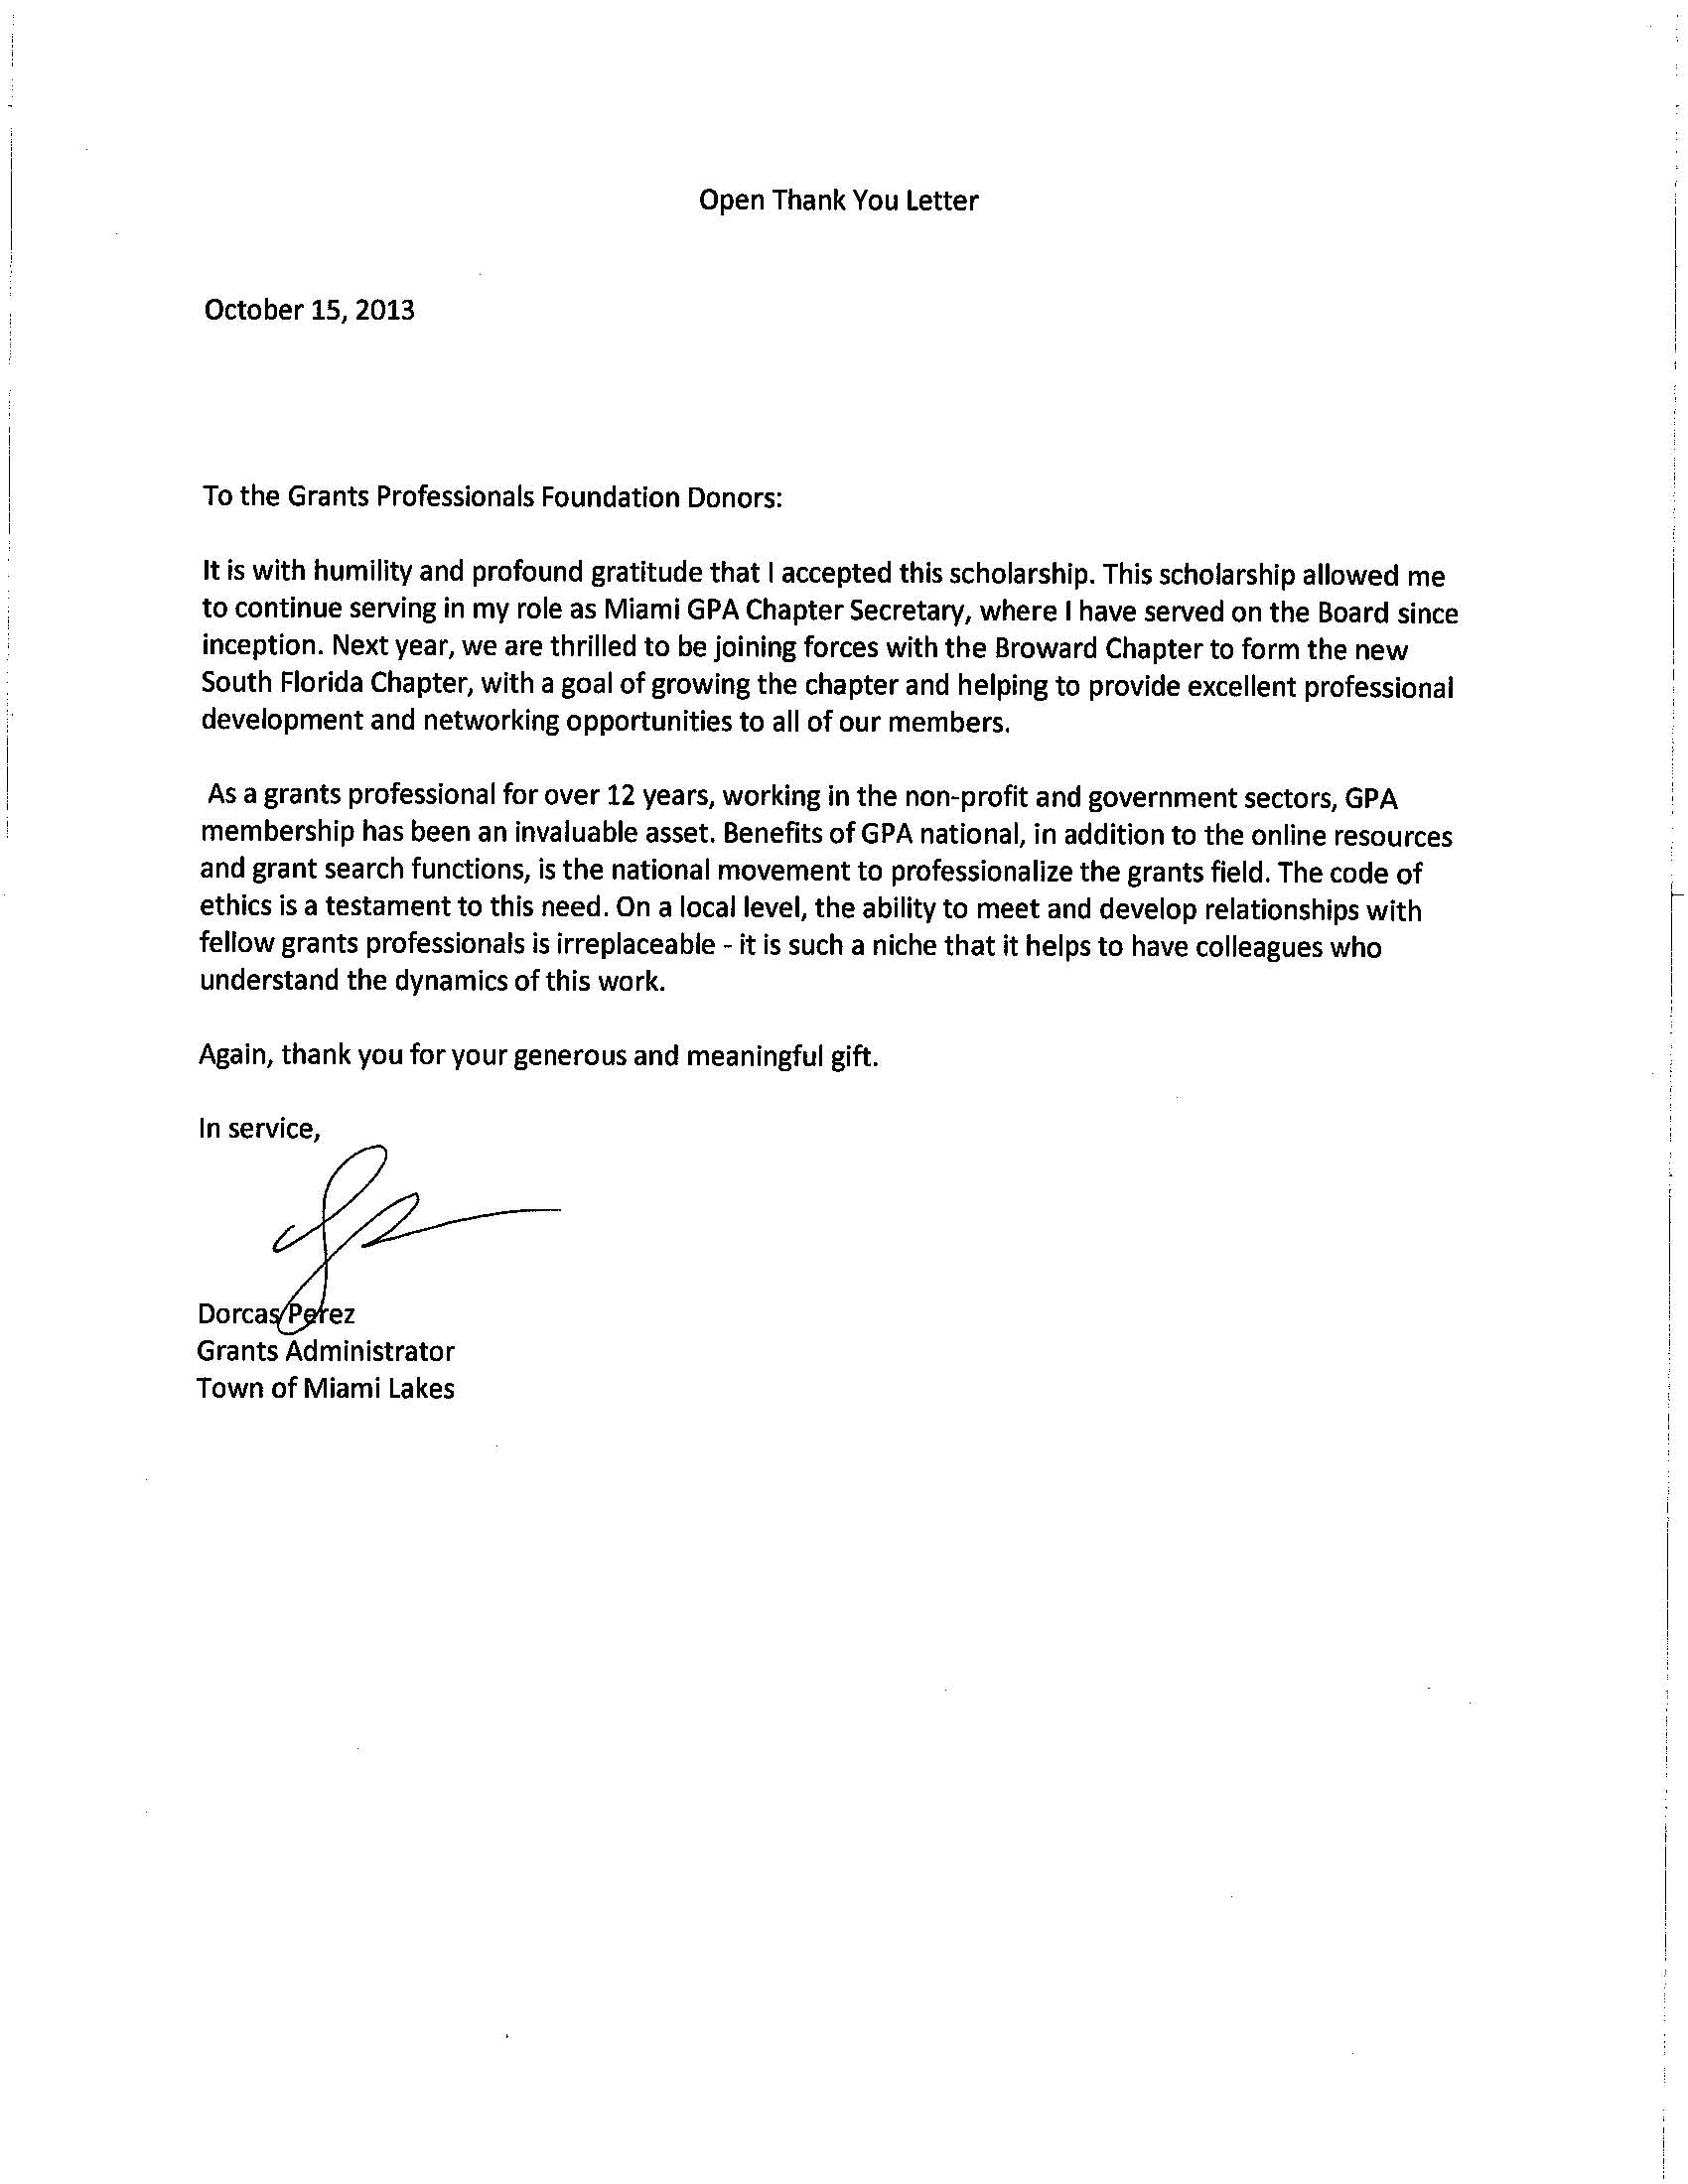 Scholarship Thank You Letter Template - Thank You Letters to Veterans Examples Samples